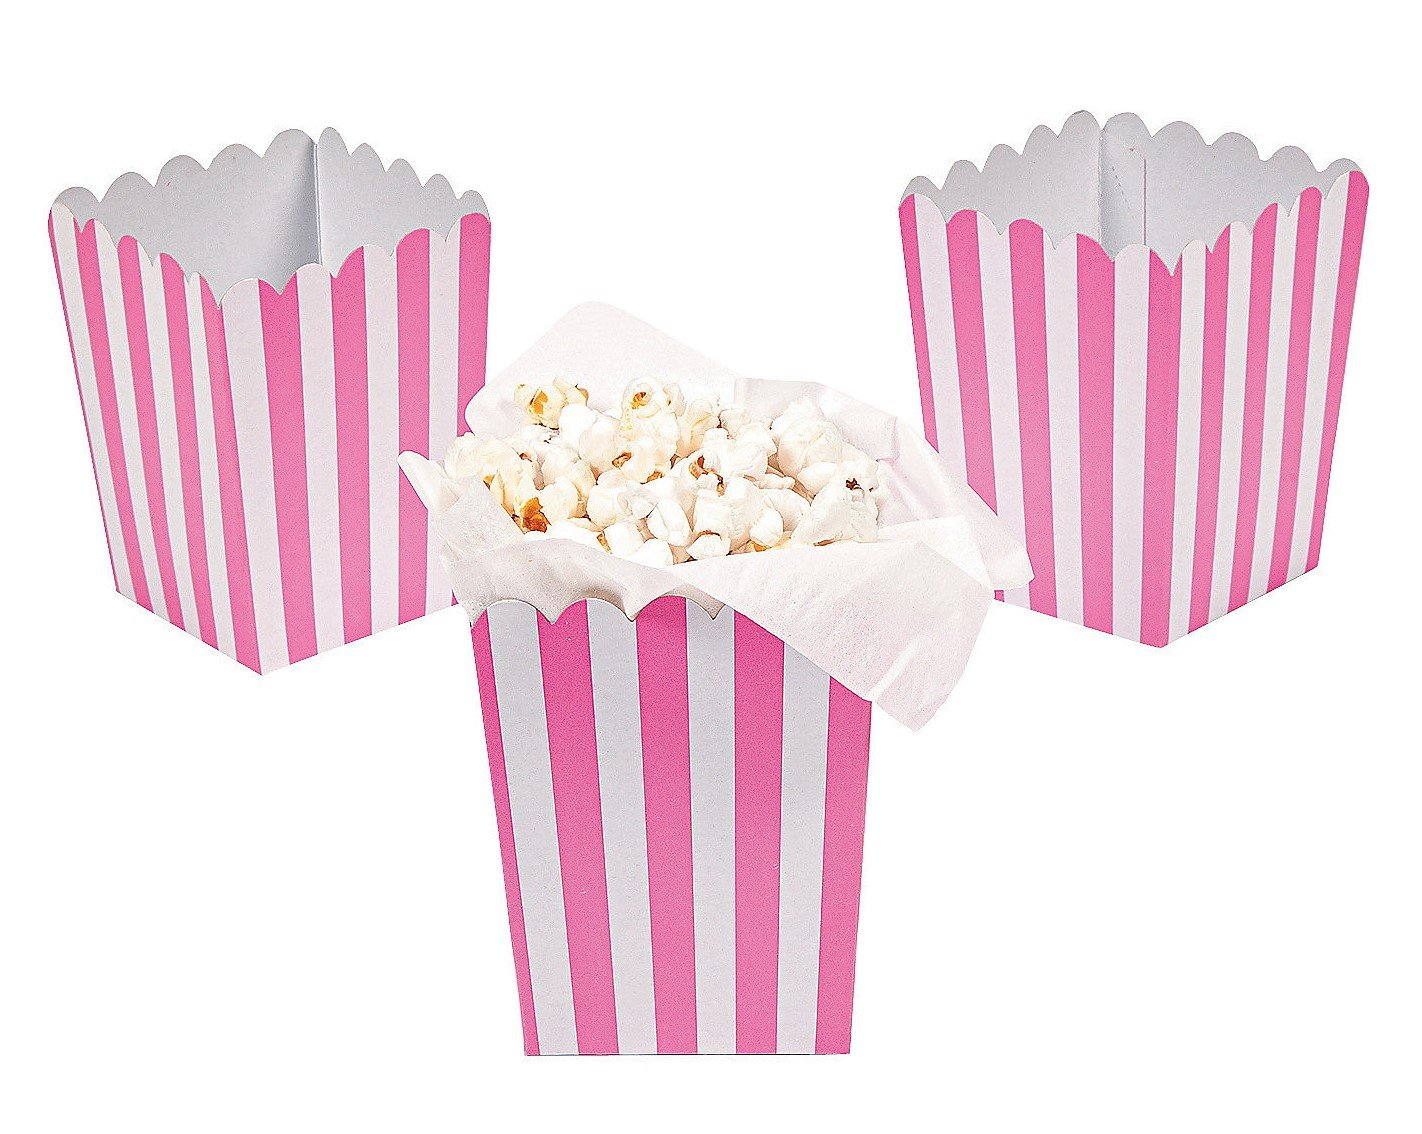 Amazon.com: 24 Mini Candy Pink Striped Popcorn Boxes - Party ...